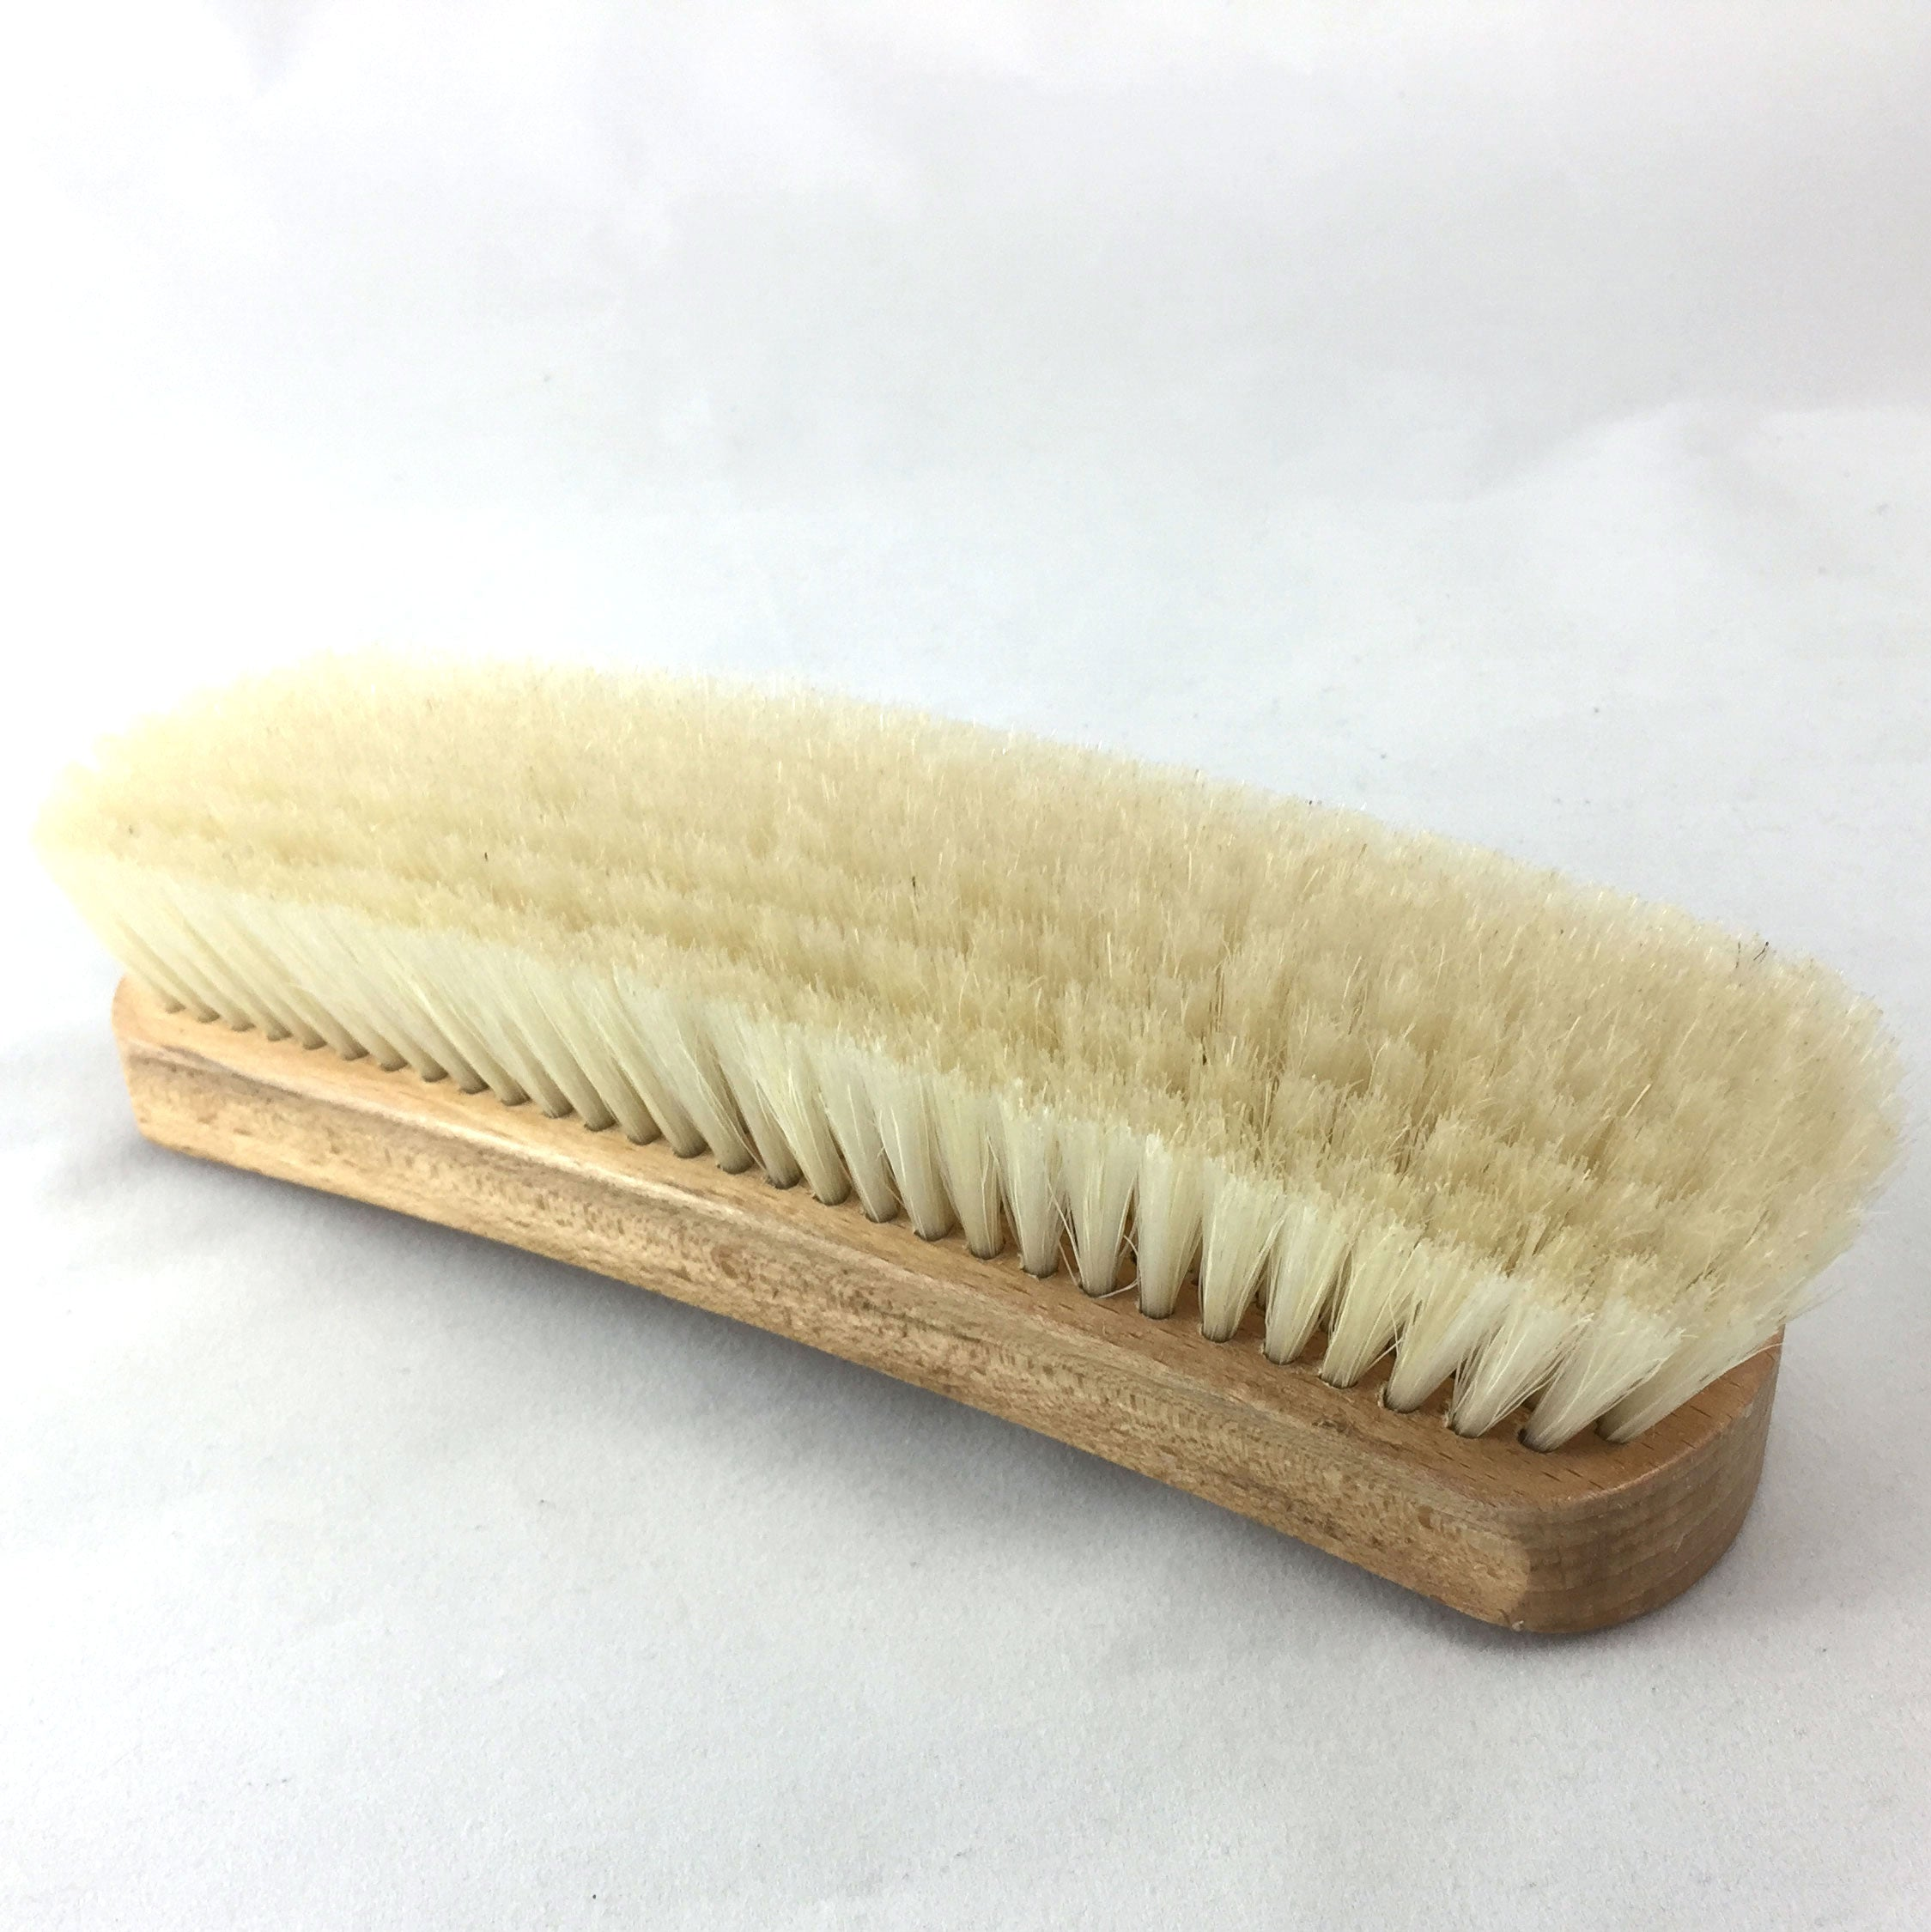 Showing bottom and side of horsehair and oak clothing and shoe brush. Best use for lint, pet hair and buffing shoes.